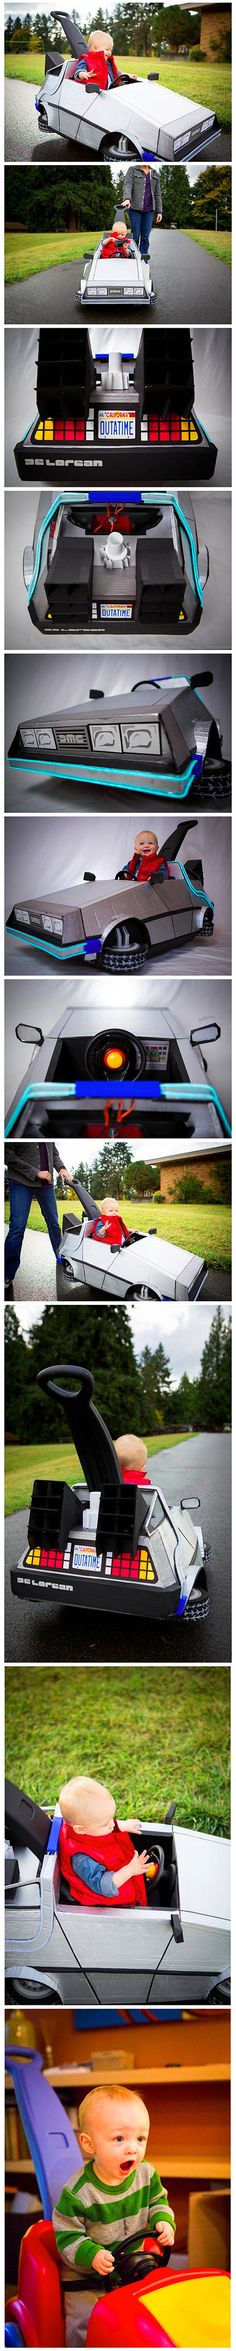 Mom Loves Back to the Future, Creates Time Machine for Baby Son - TechEBlog